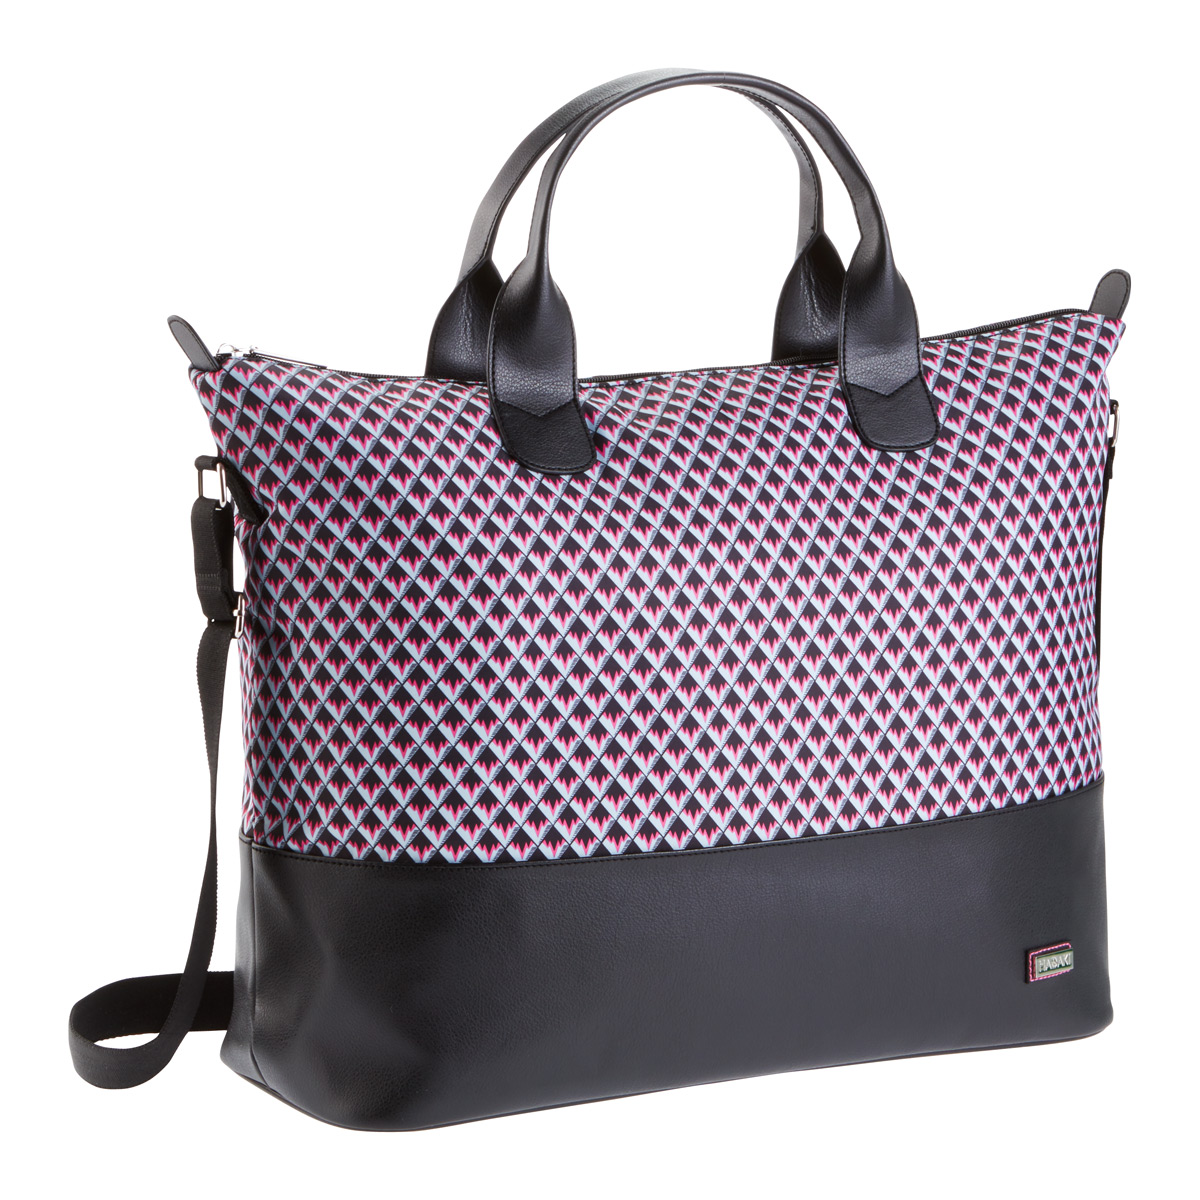 Diamond Hampton Tote